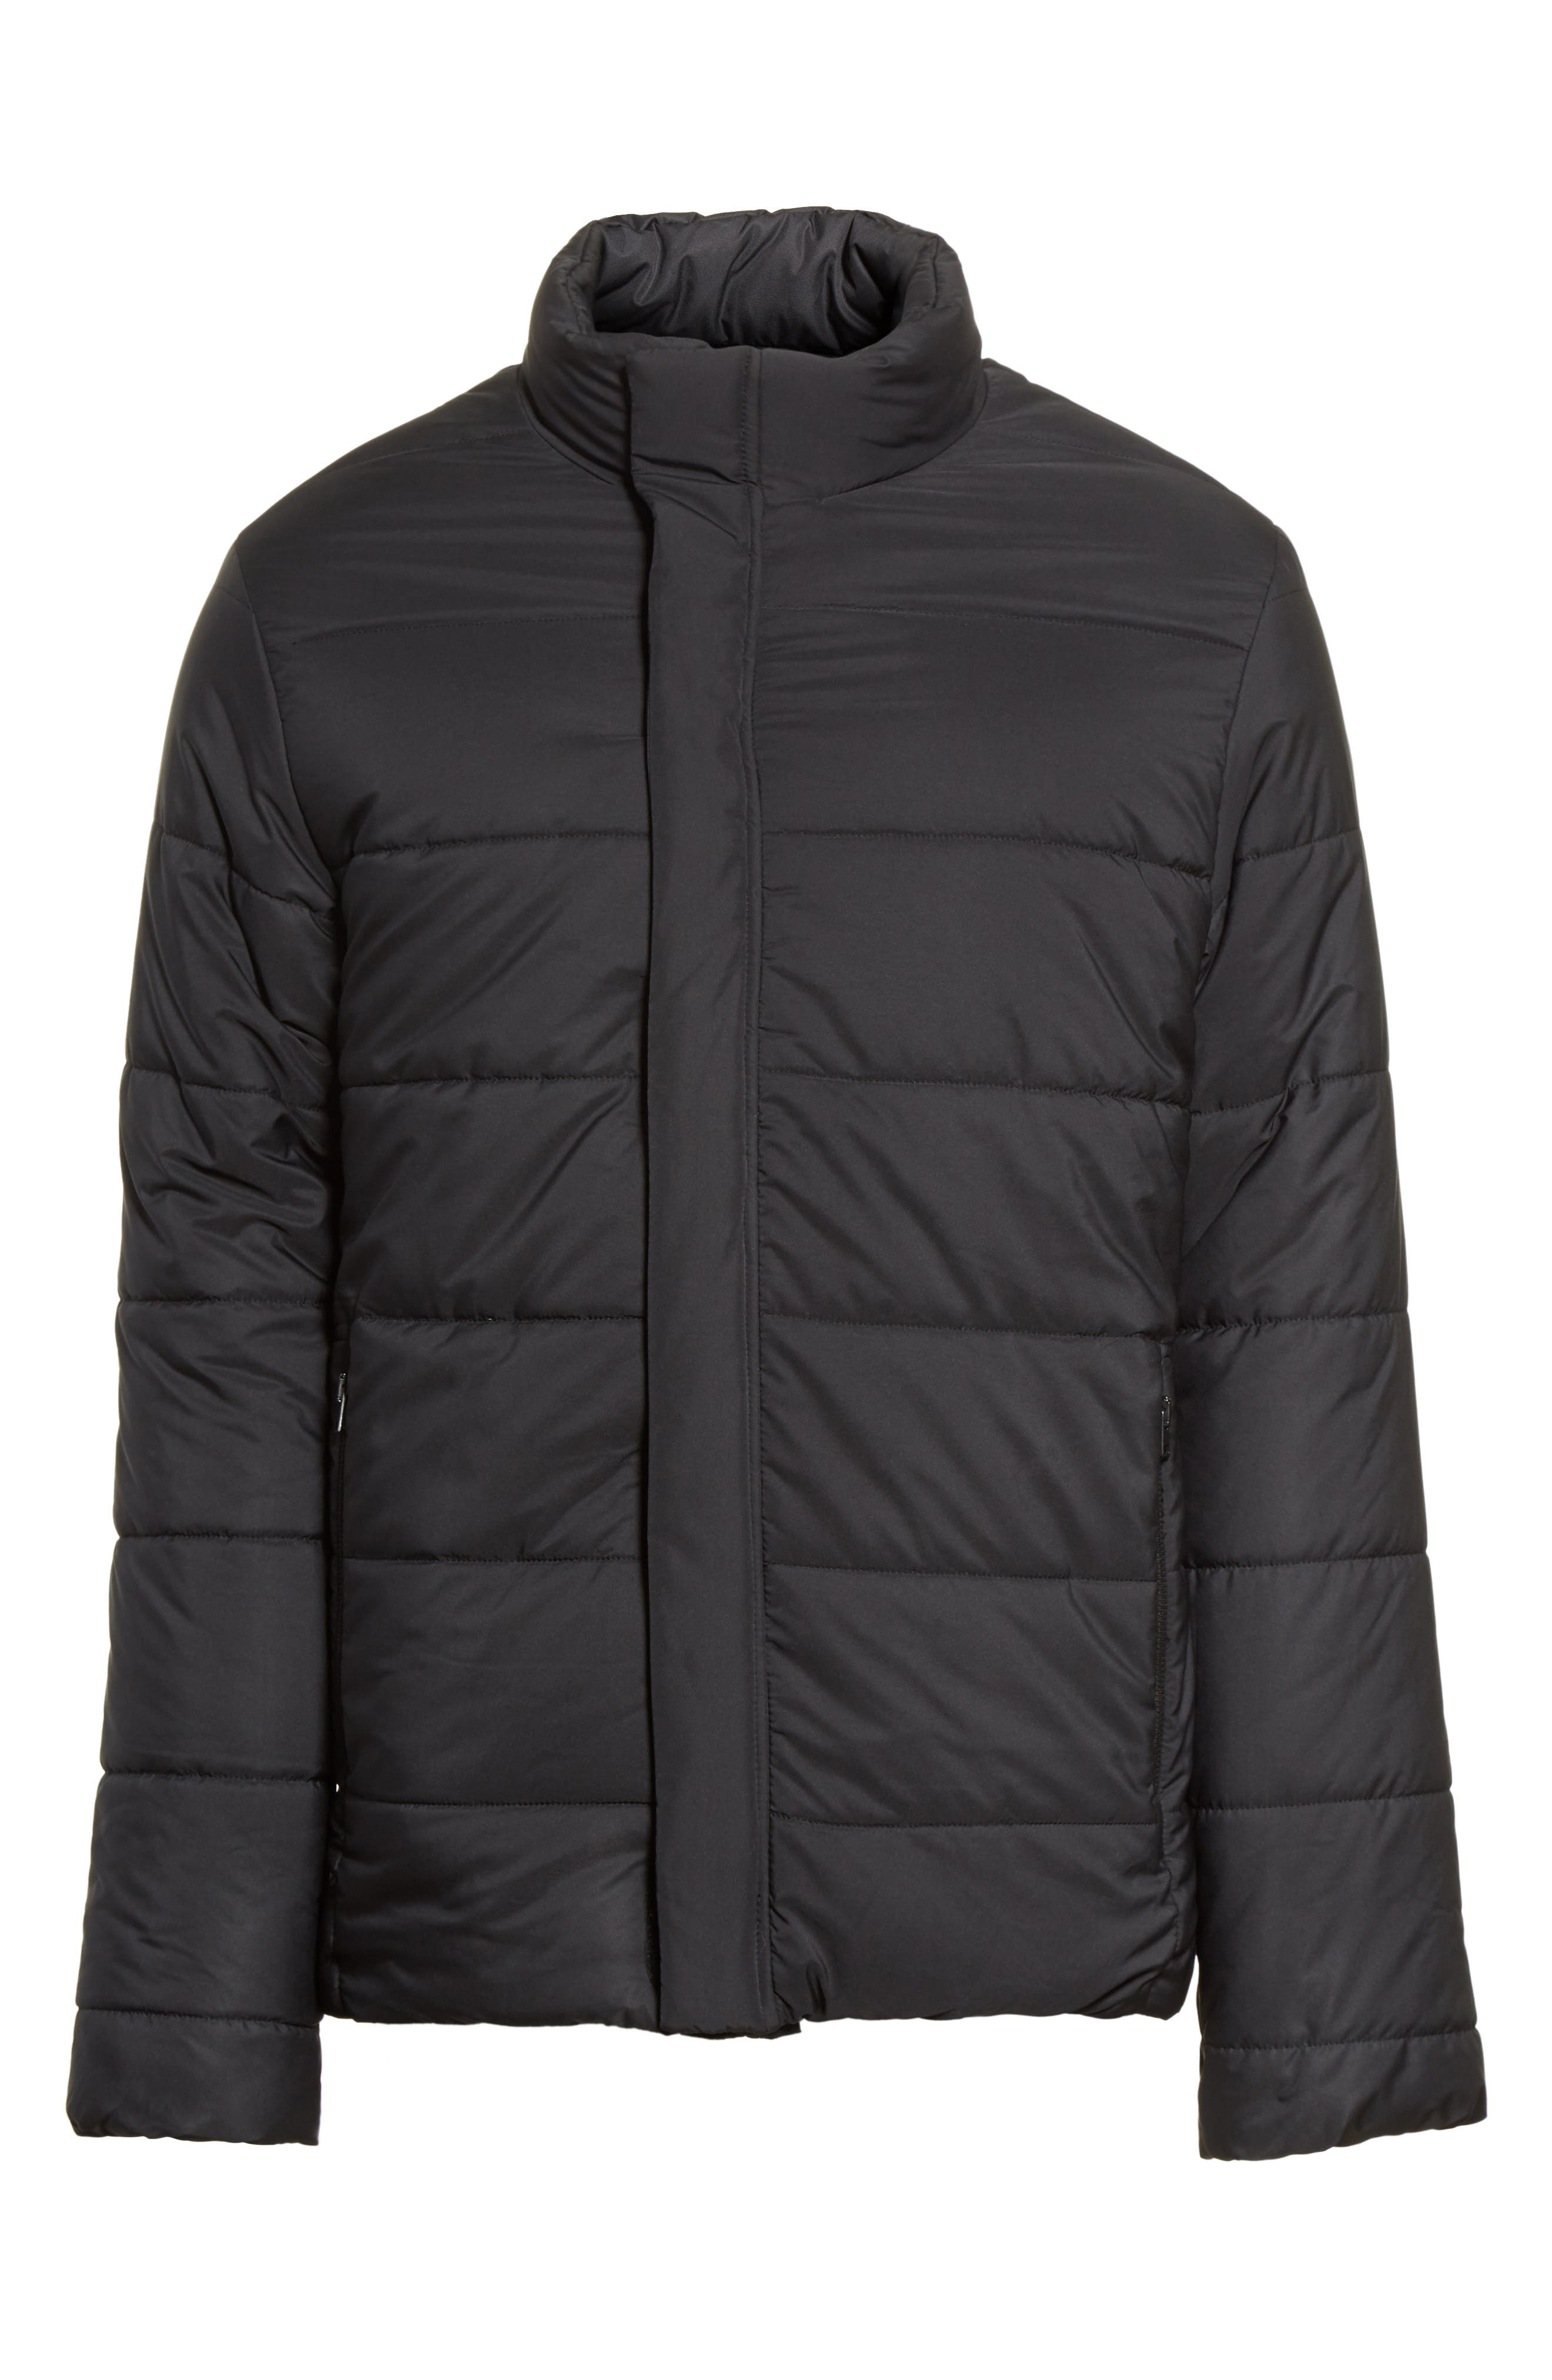 Quilted Creek Jacket,                             Alternate thumbnail 2, color,